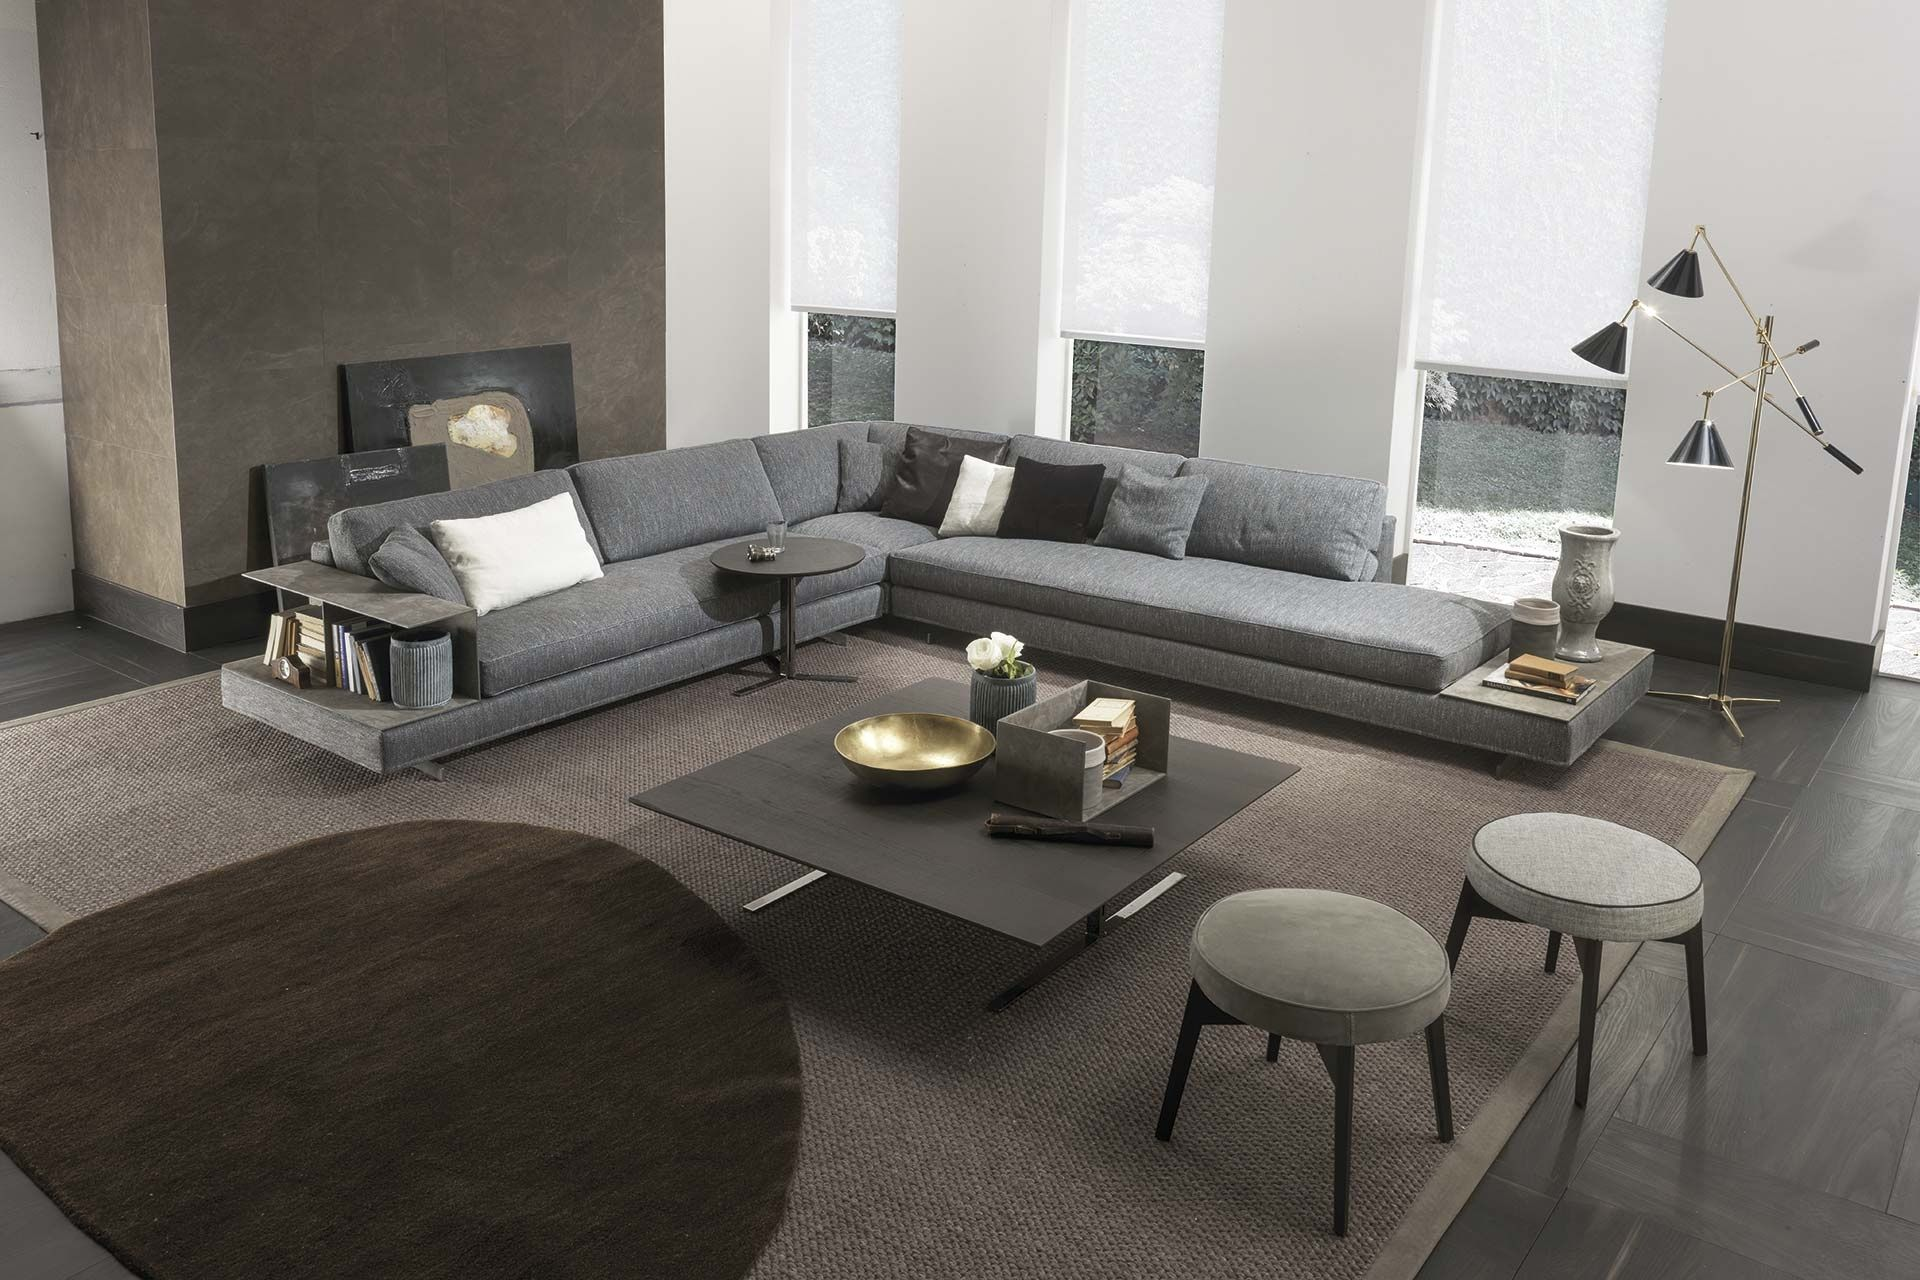 Wohnzimmer Couch Im Raum Davis Case Sofa By Frigerio Davis Collection Is Characterised By